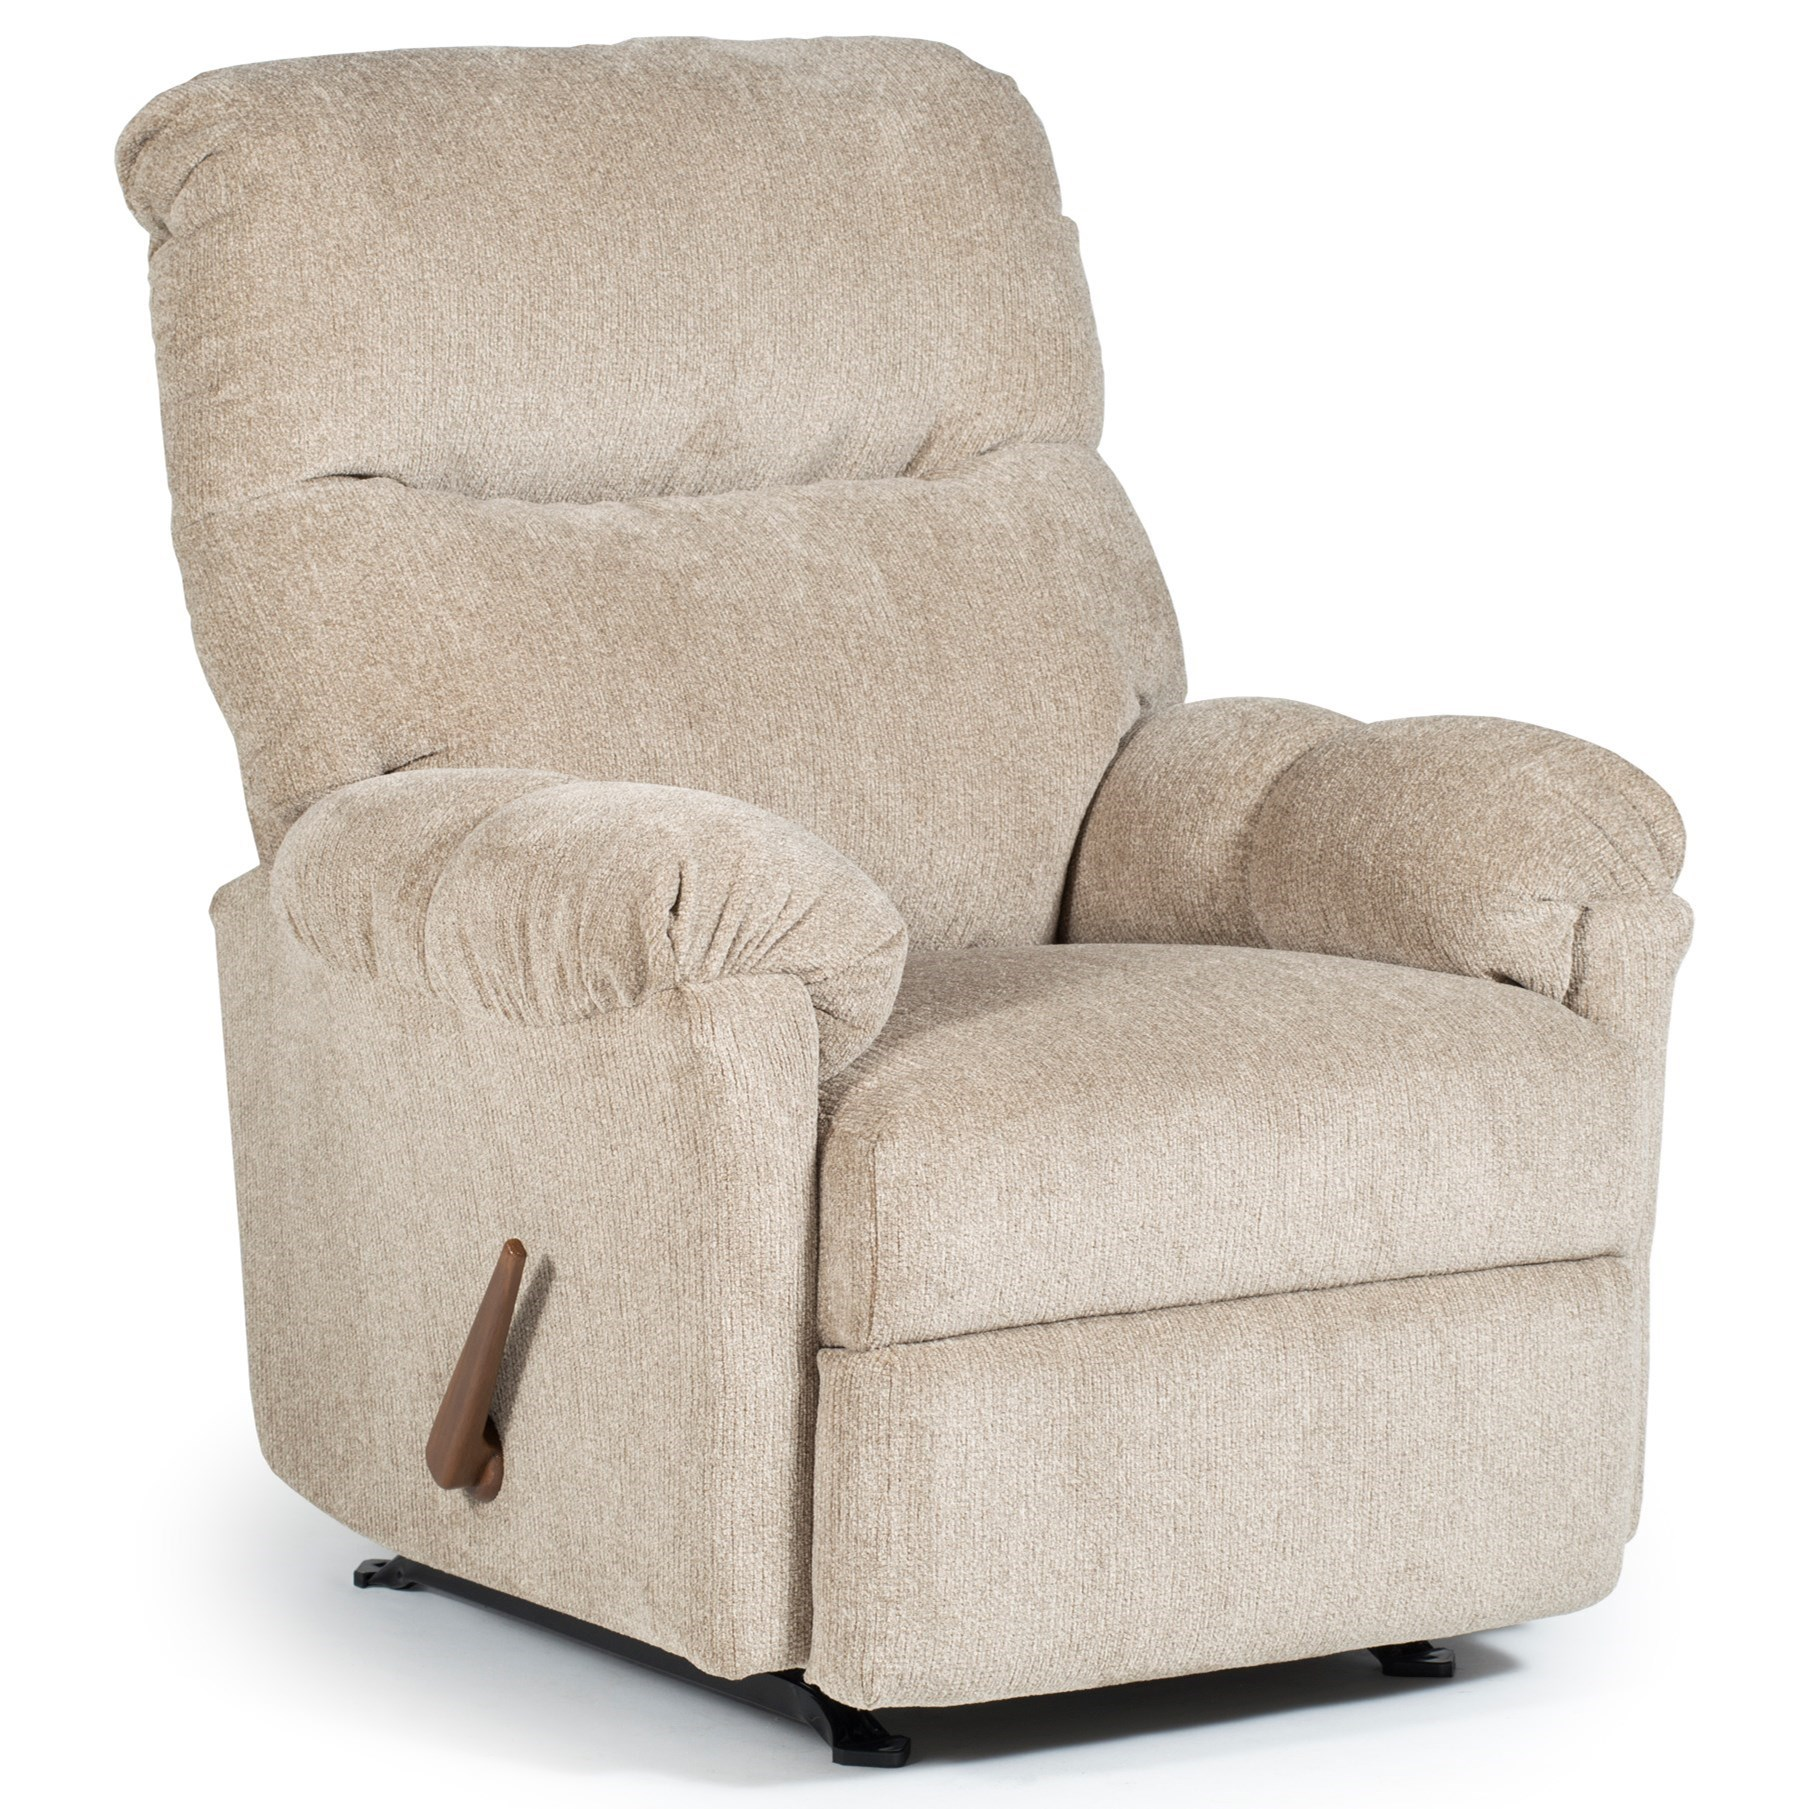 Best Home Furnishings Recliners - Medium Balmore Rocker Recliner - Item Number: 2NW67